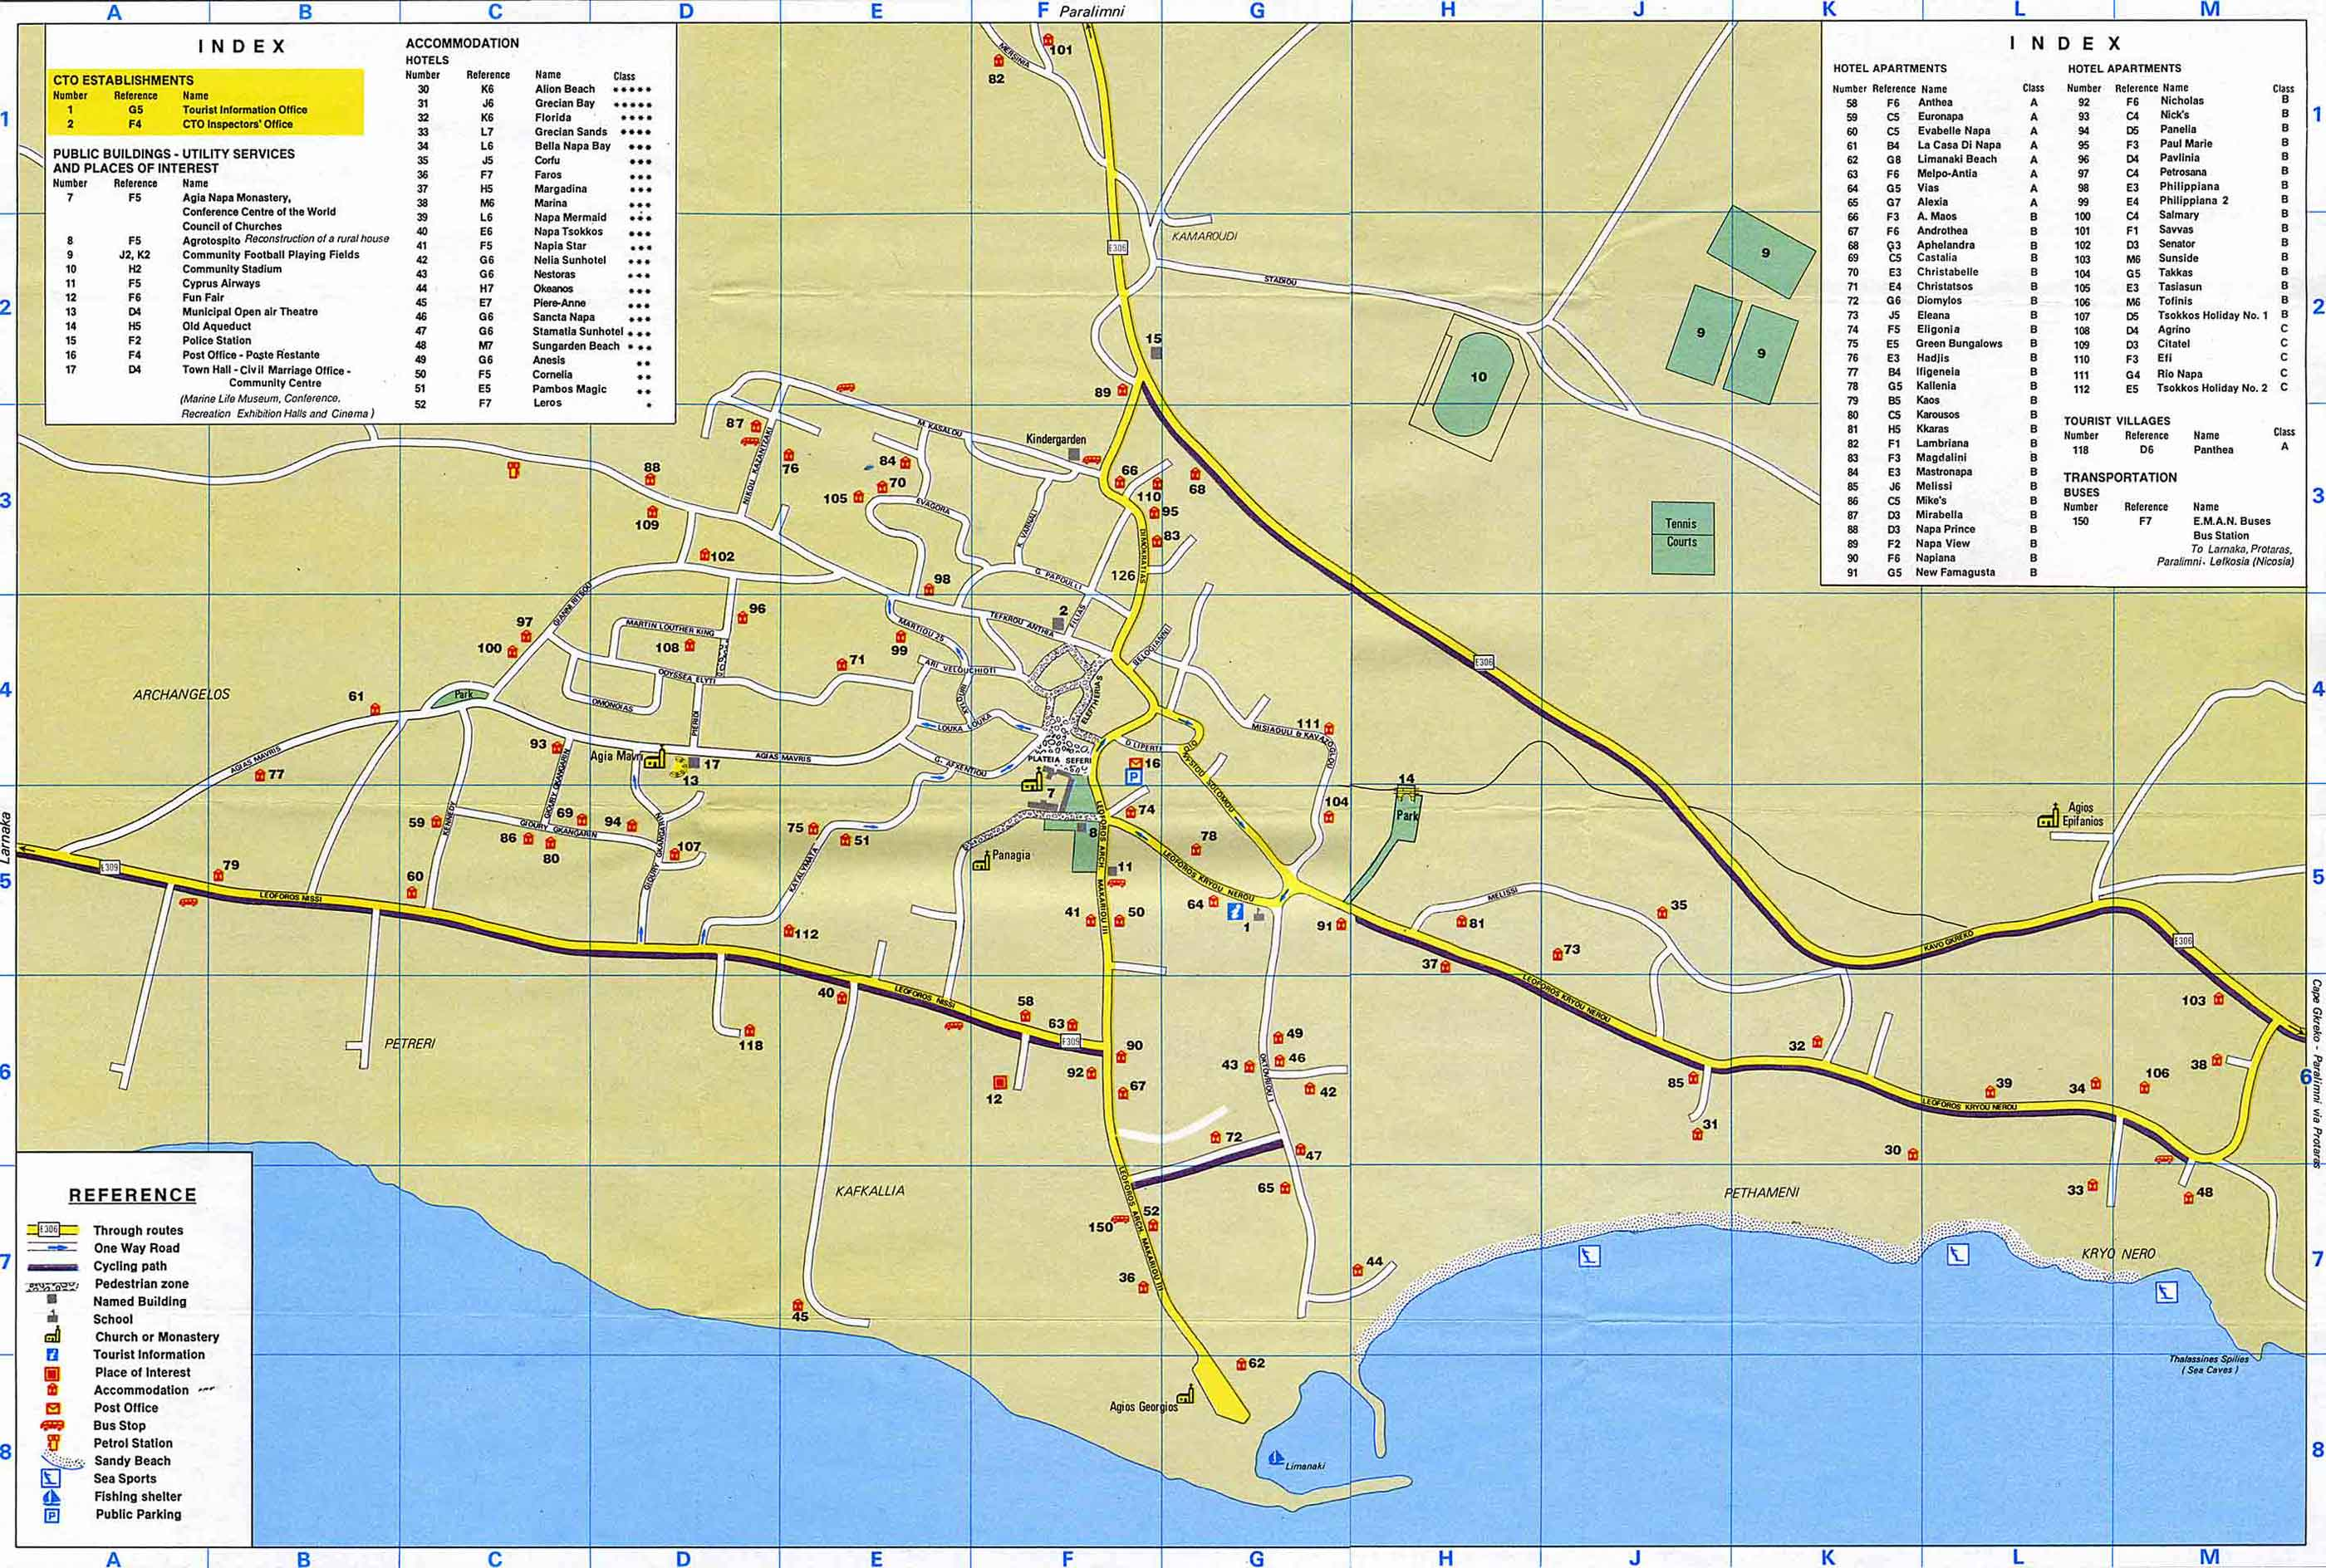 Famagusta Maps Ayia Napa Map and Protaras Map